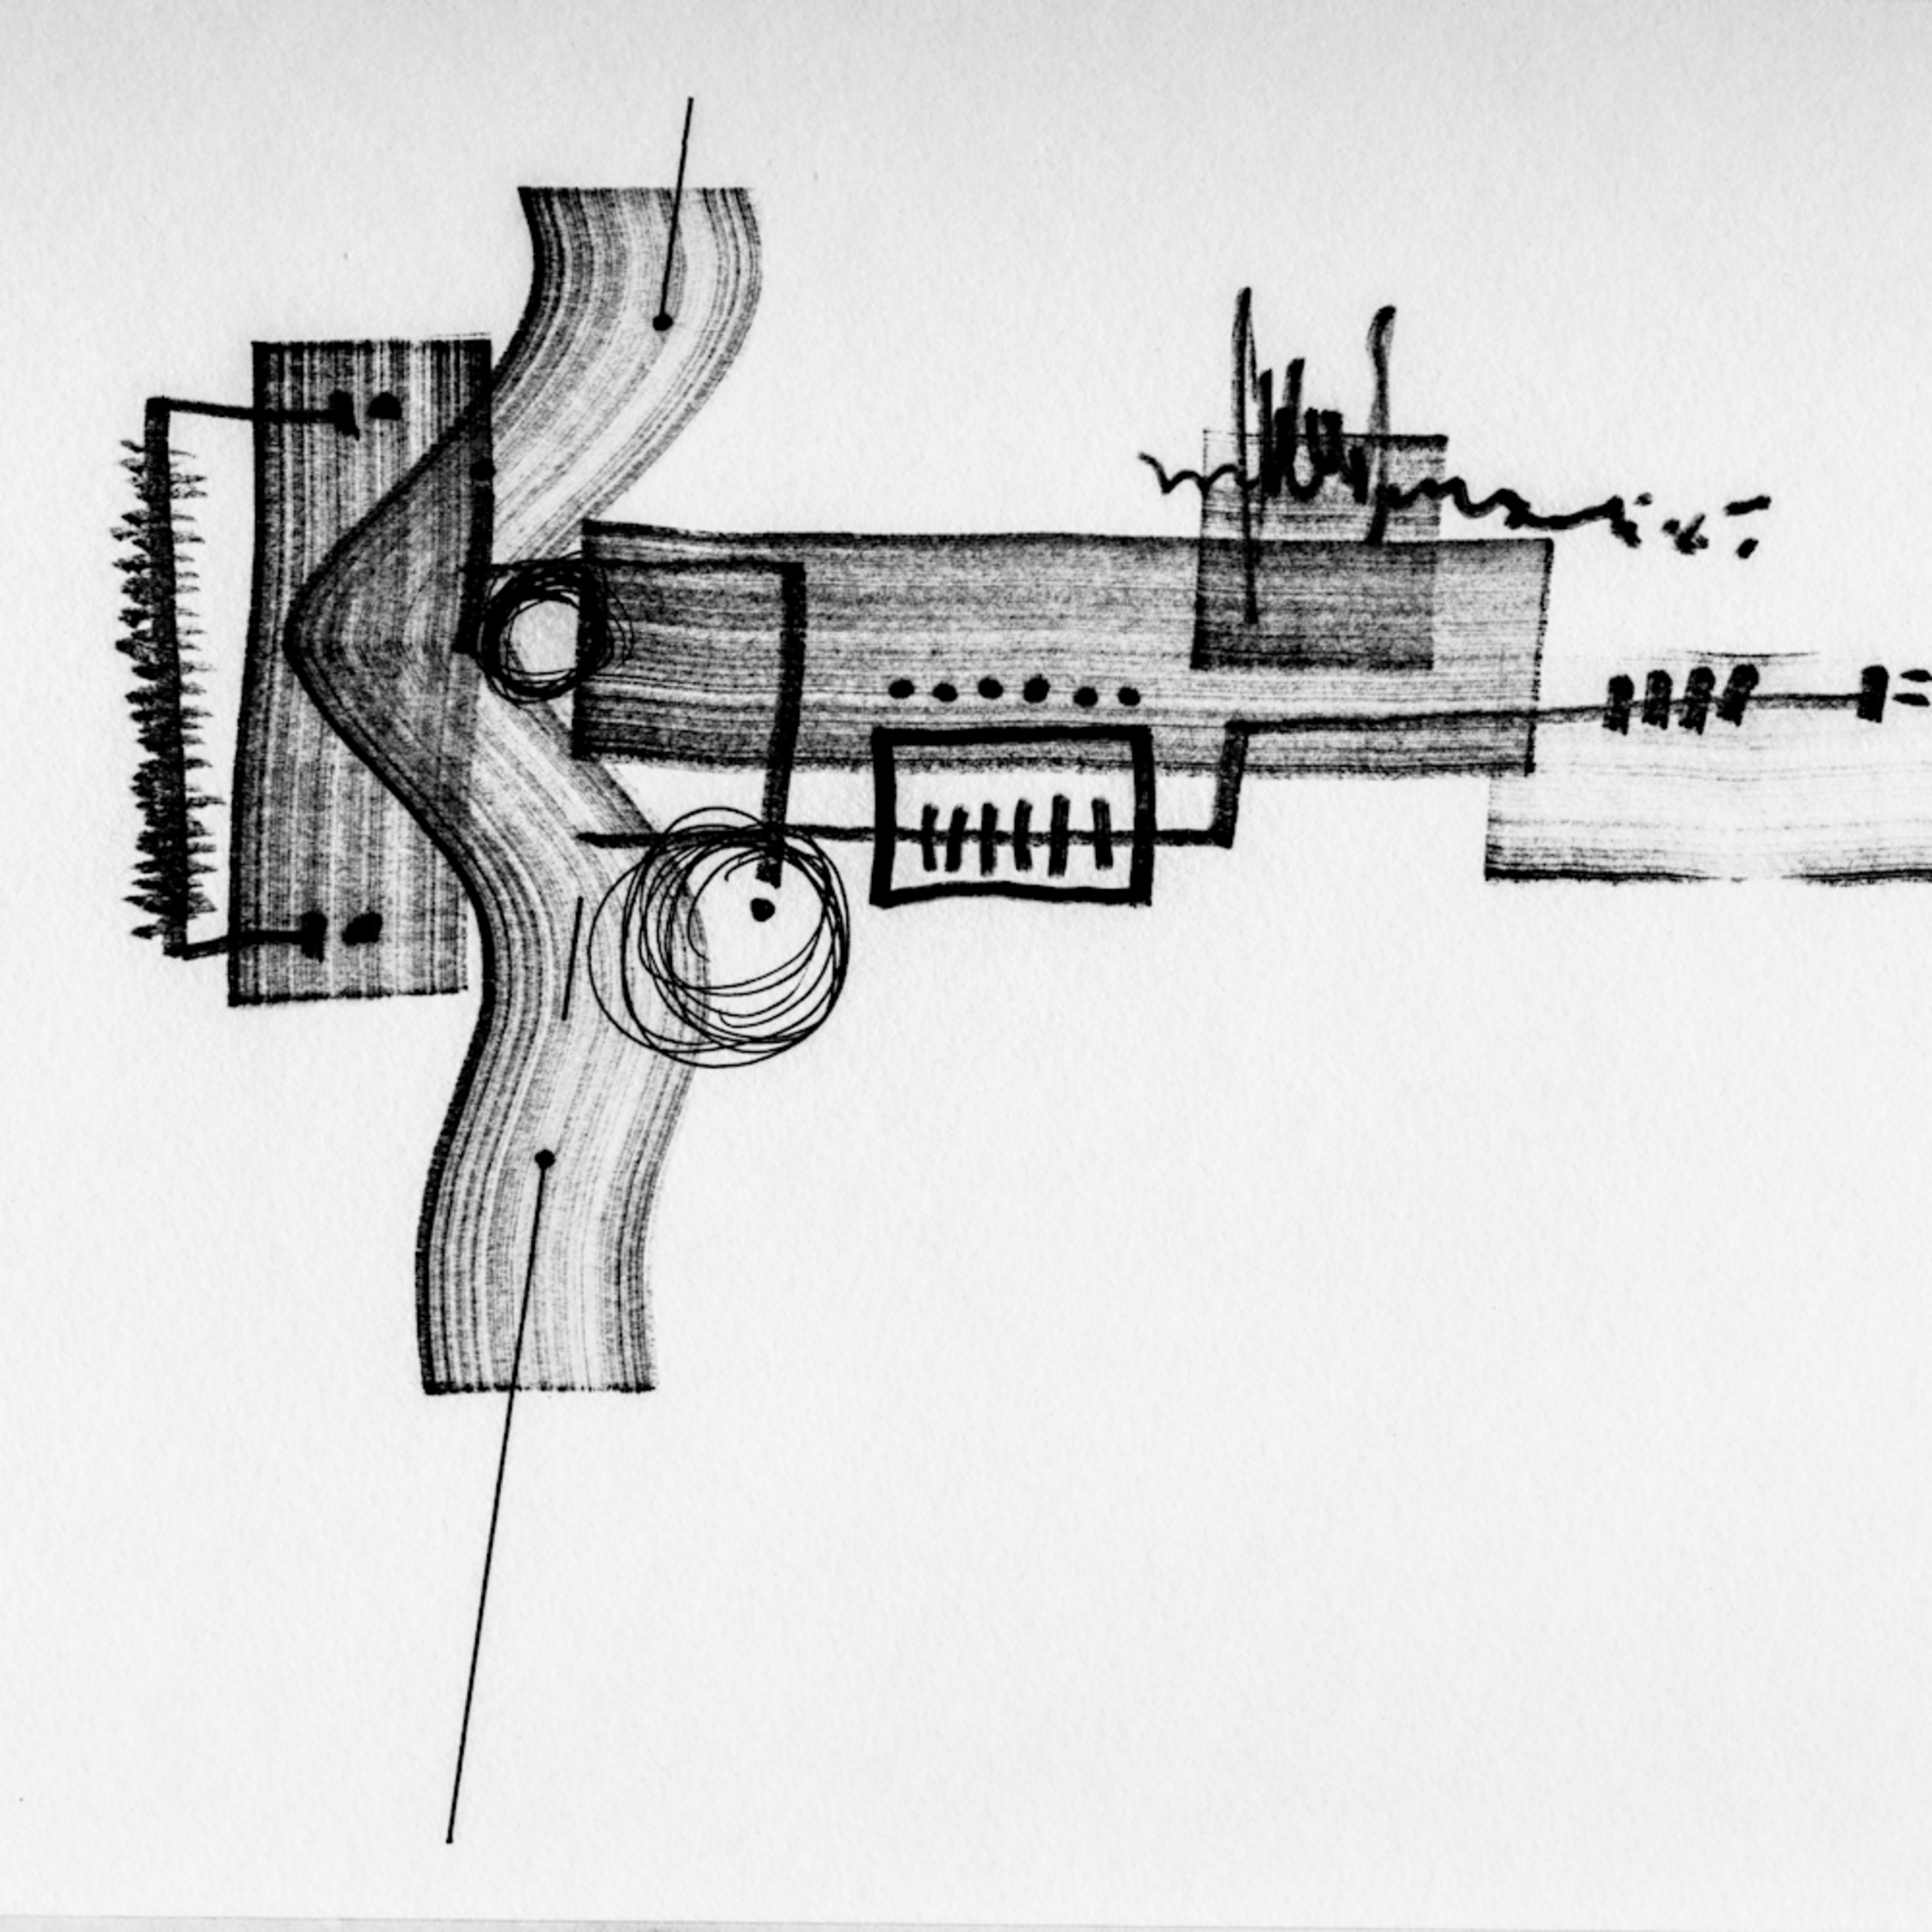 Drawing 10 kd6on2